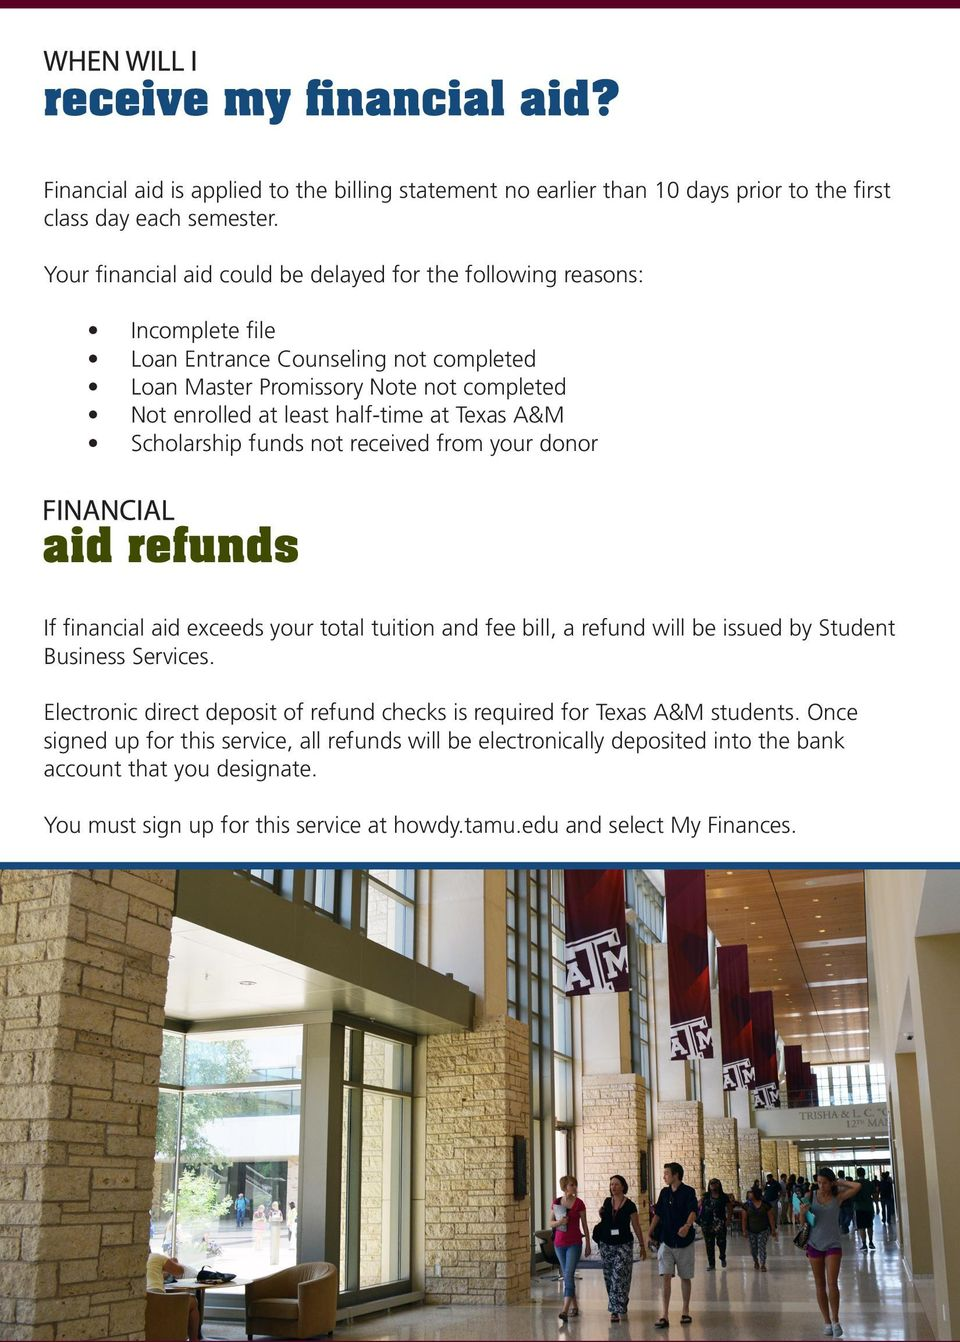 half-time at Texas A&M Scholarship funds not received from your donor If financial aid exceeds your total tuition and fee bill, a refund will be issued by Student Business Services.